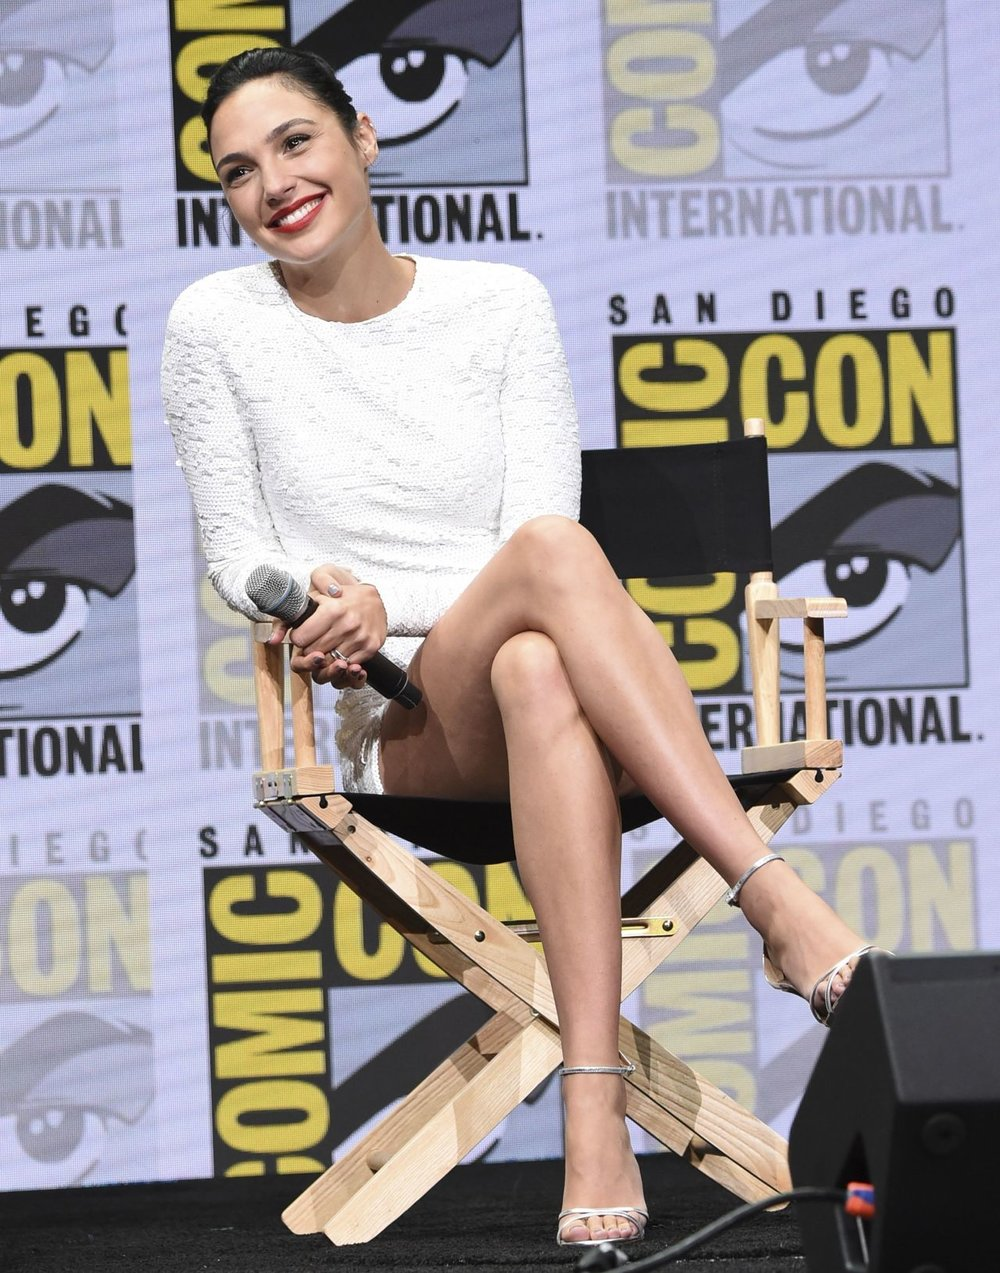 gal-gadot-warner-bros.-pictures-panel-at-comic-con-in-san-diego-07-22-2017-24.jpg